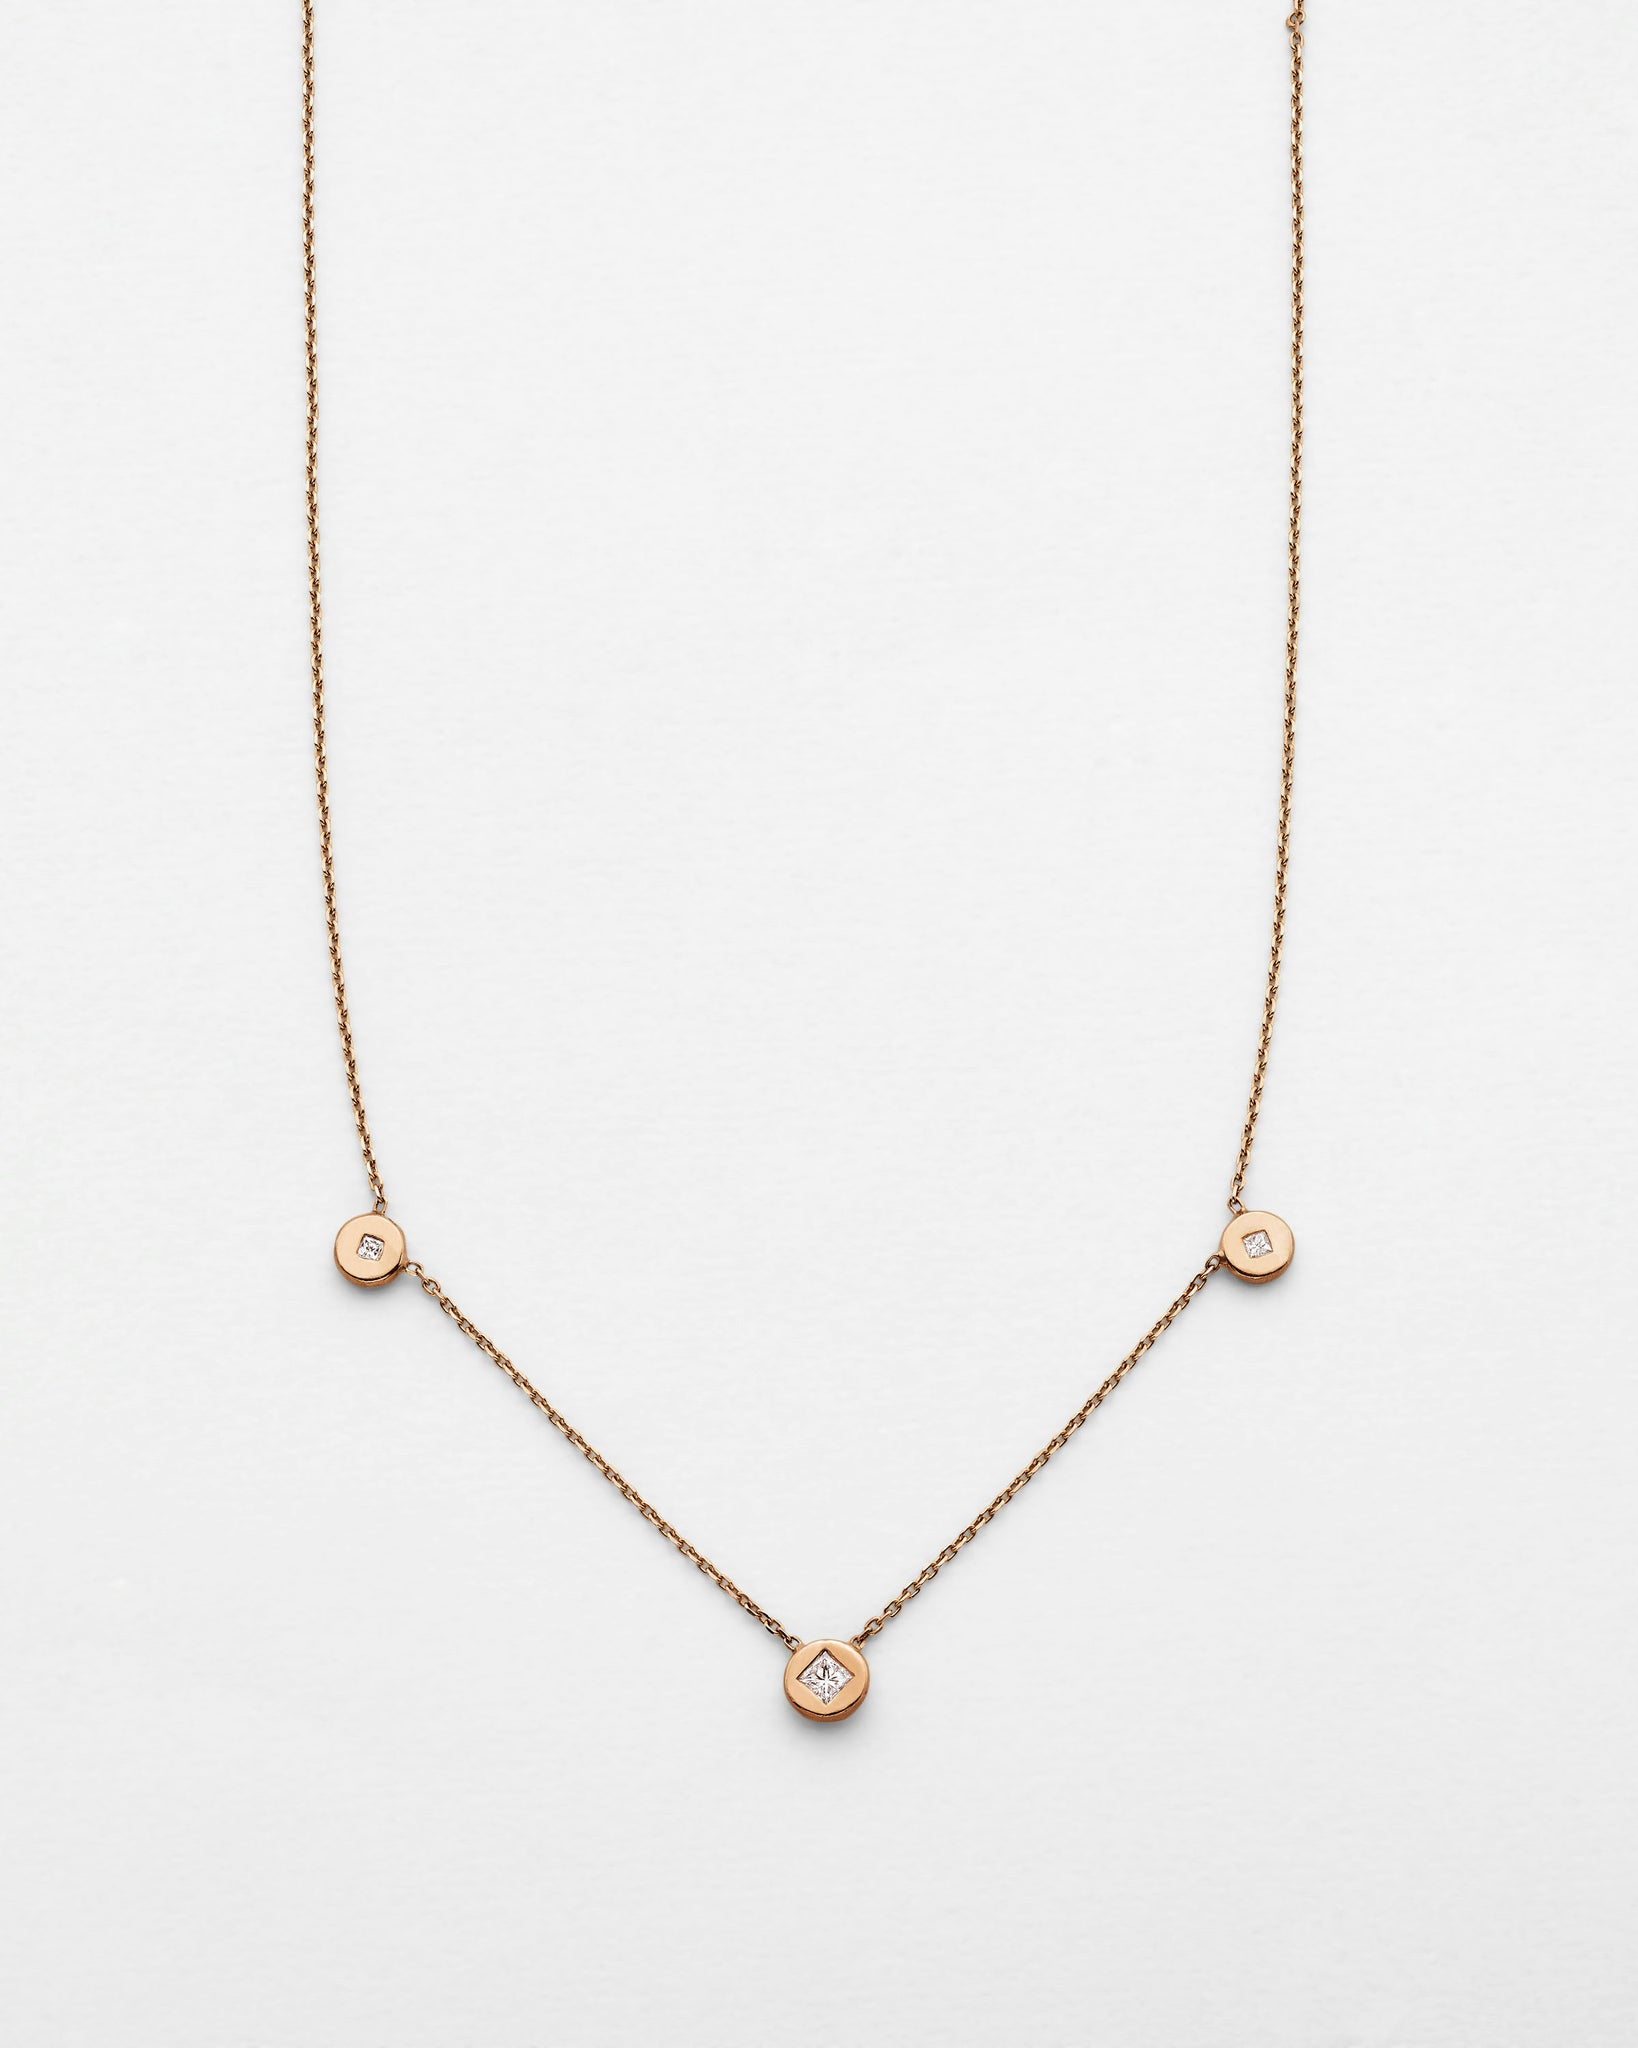 Chain Reaction Trio Medallion Necklace